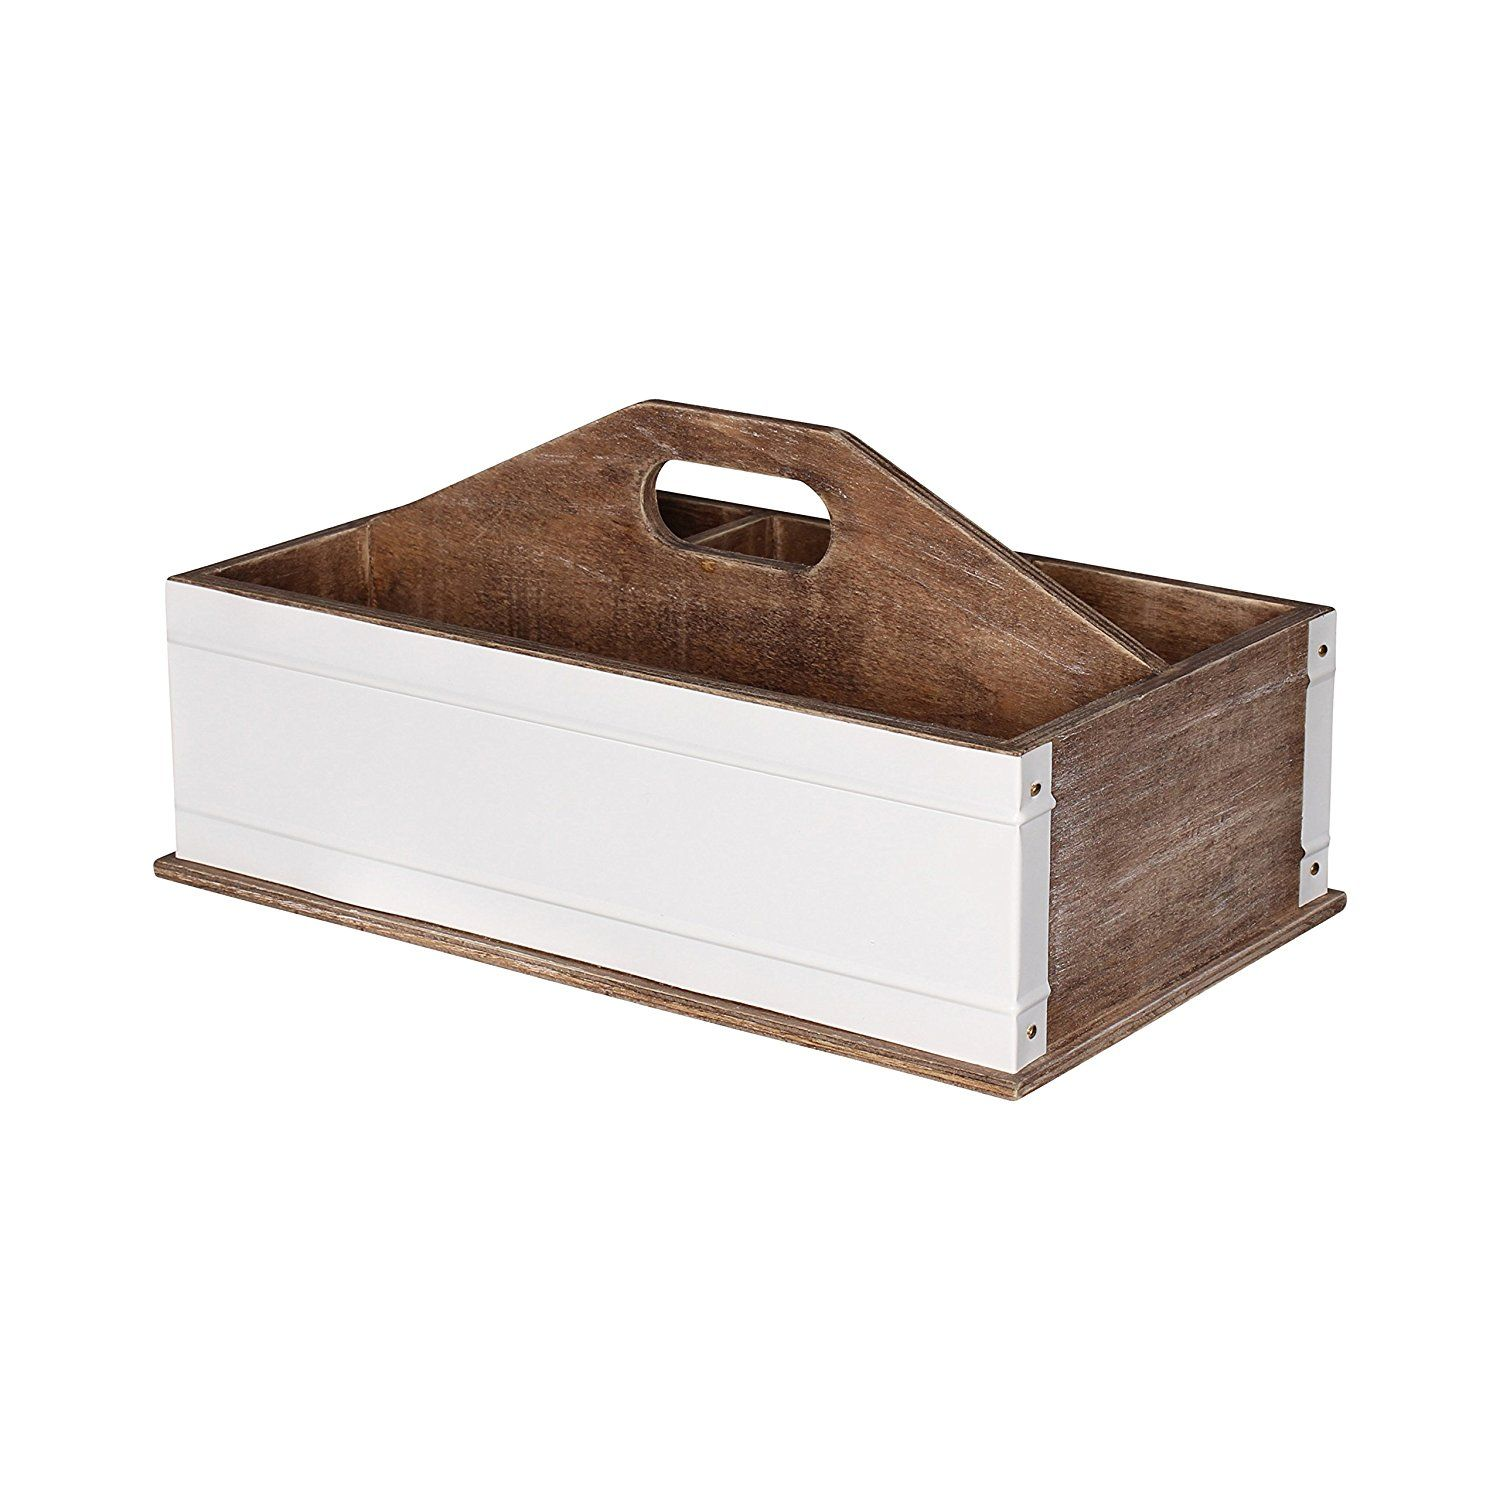 Amazon.com : Kate And Laurel Industrious Desktop Office Supply Caddy  Organizer, Rustic Wood